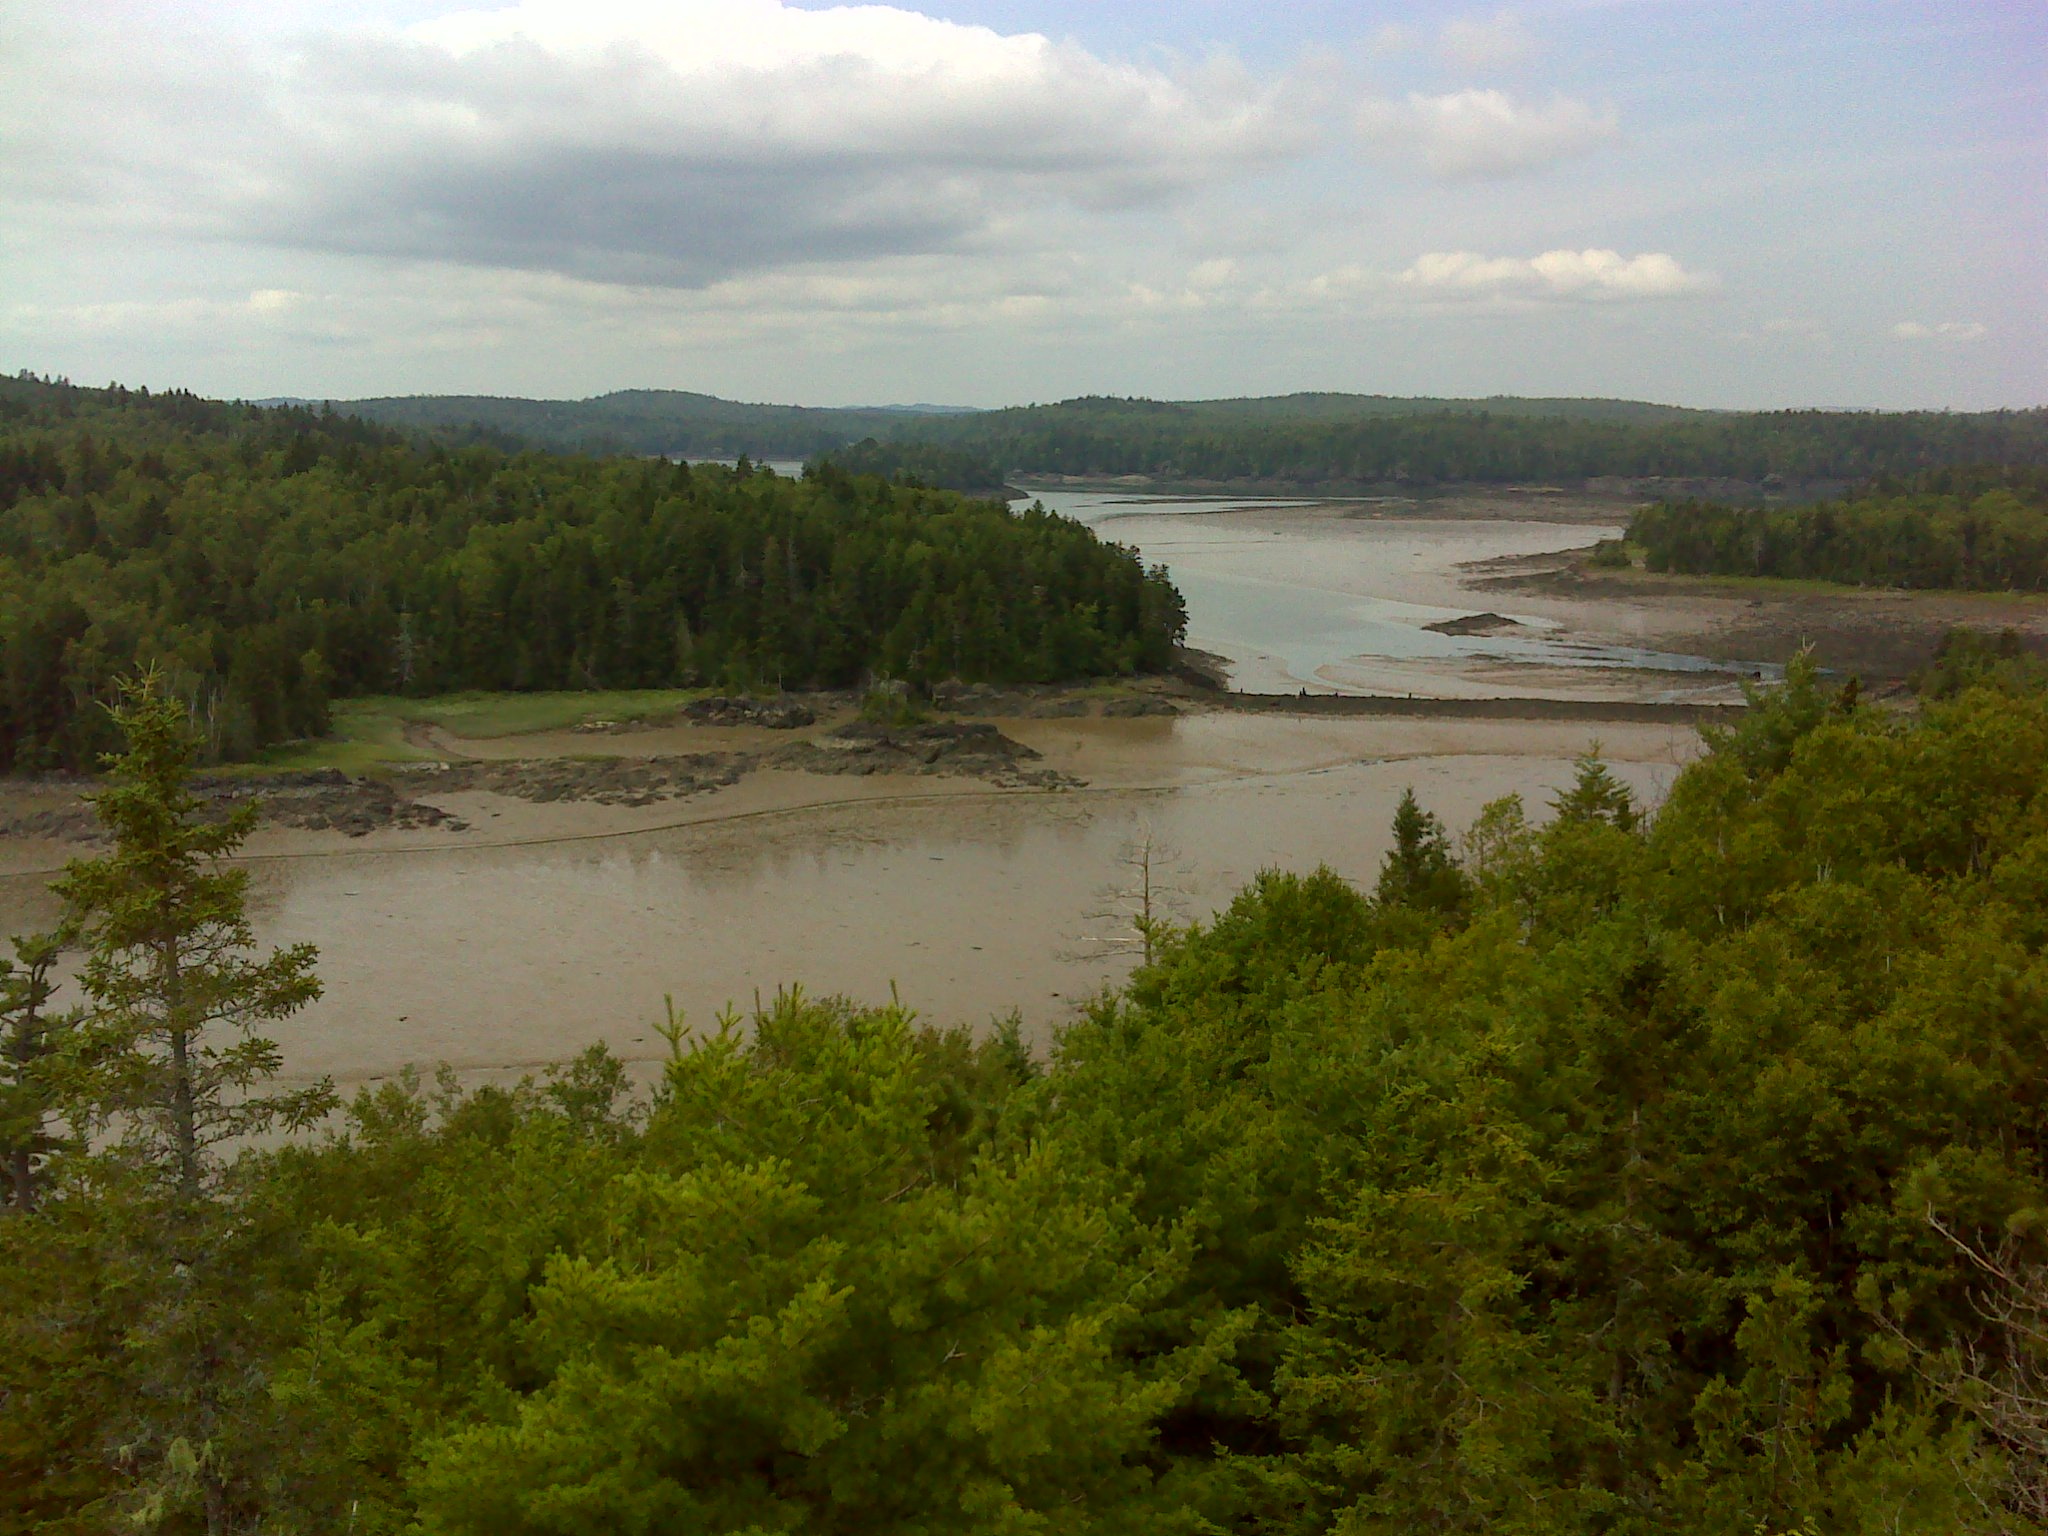 The mill dam seen from the shoulder of Klondike Mountain